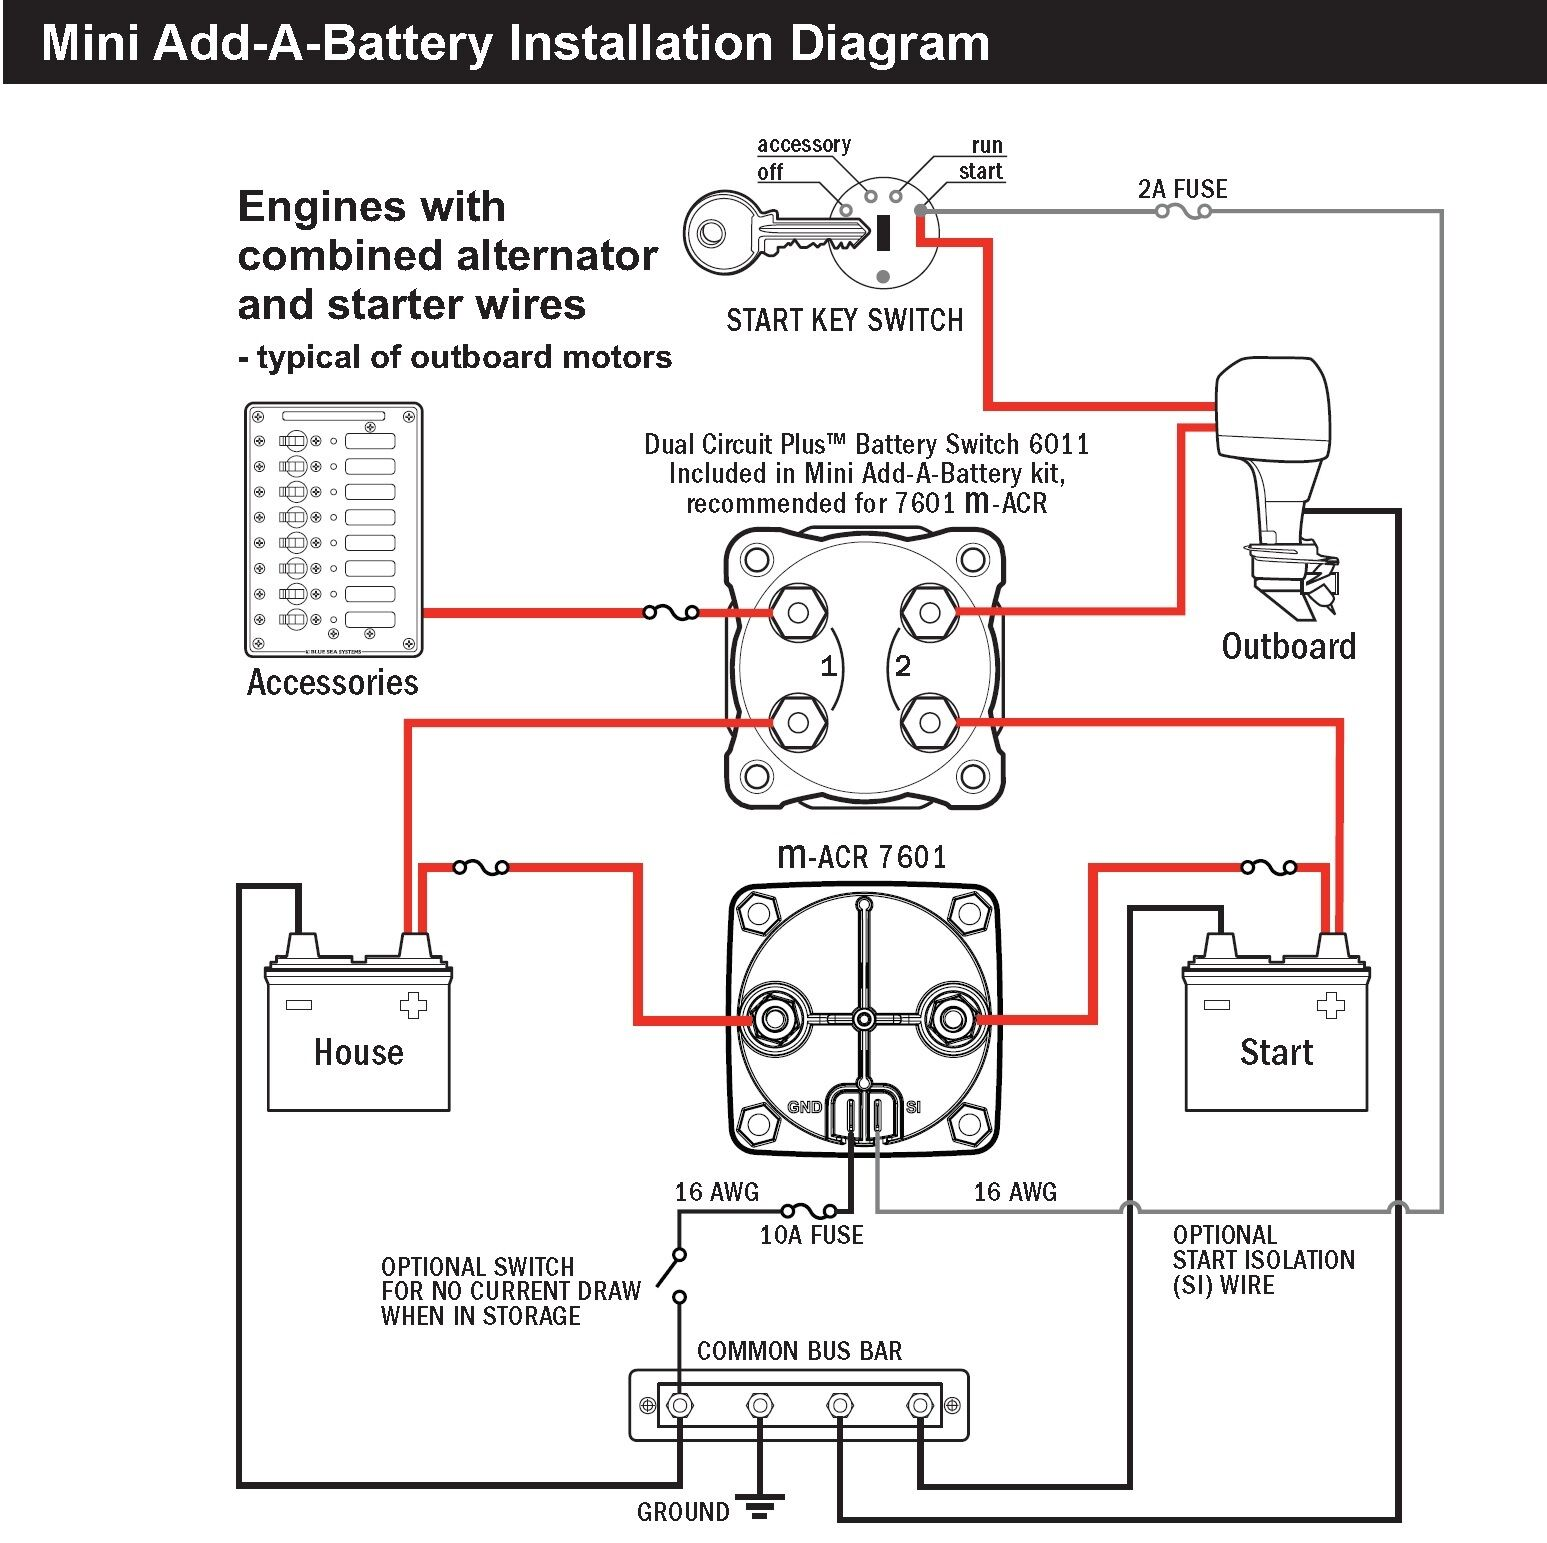 1994 Club Car Solenoid Wiring Diagram 48 Volt Which Battery Switch Is Best For A 21 With Two Batteries Golf Cart